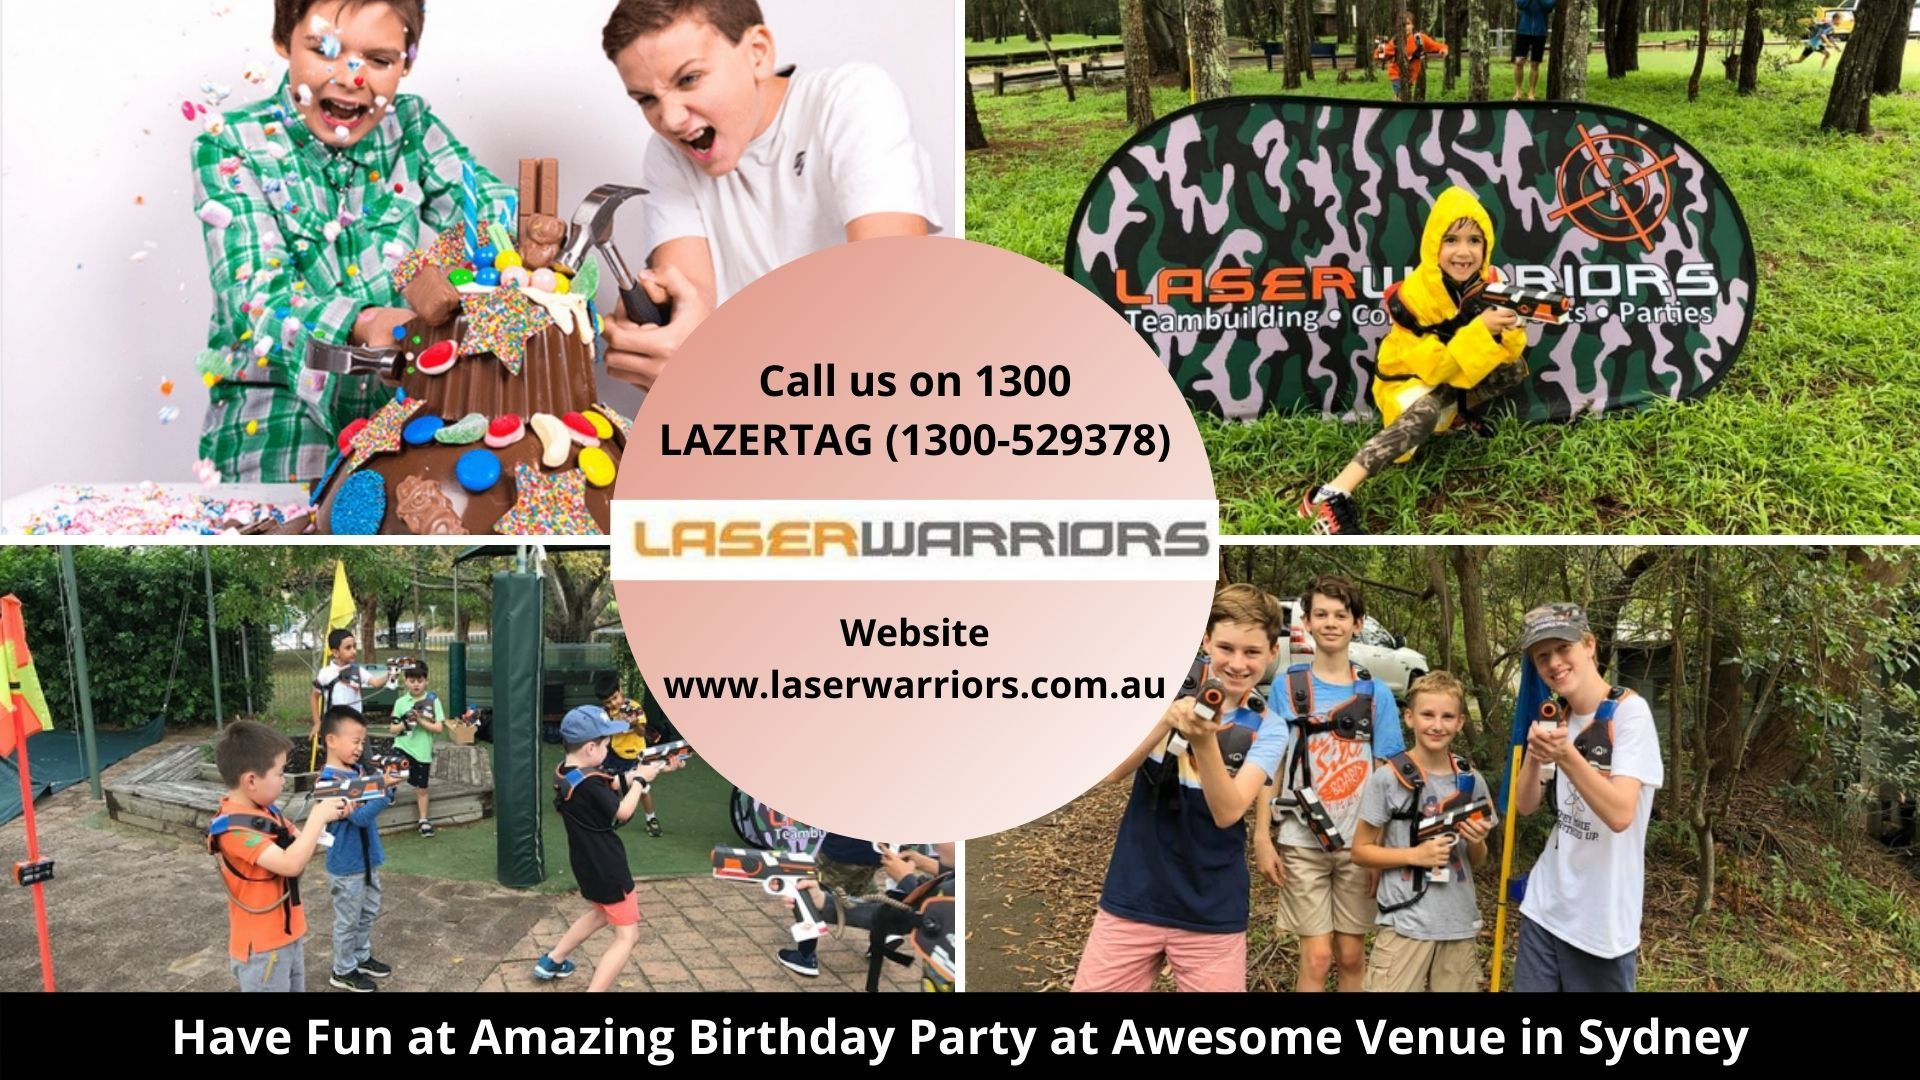 Have fun at amazing birthday party at awesome venue in